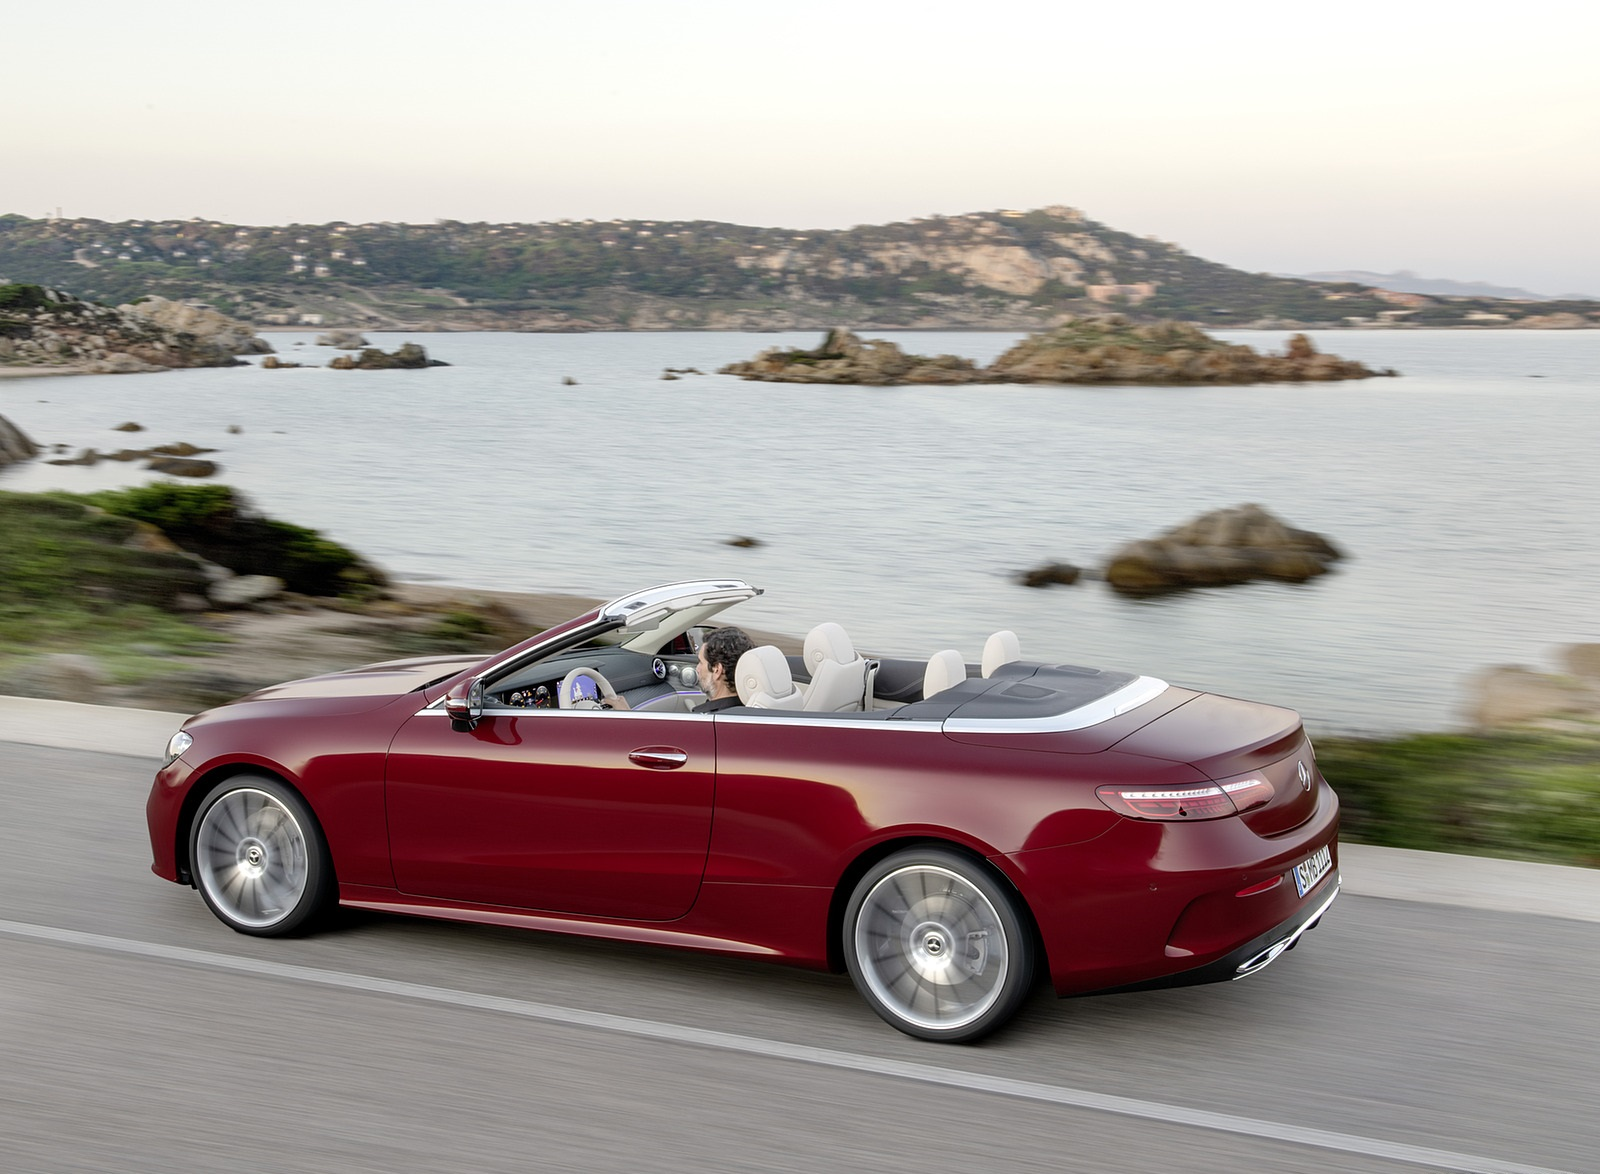 2021 Mercedes-Benz E 450 4MATIC Cabriolet AMG Line (Color: Designo Hyacinth Red Metallic) Side Wallpapers (10)